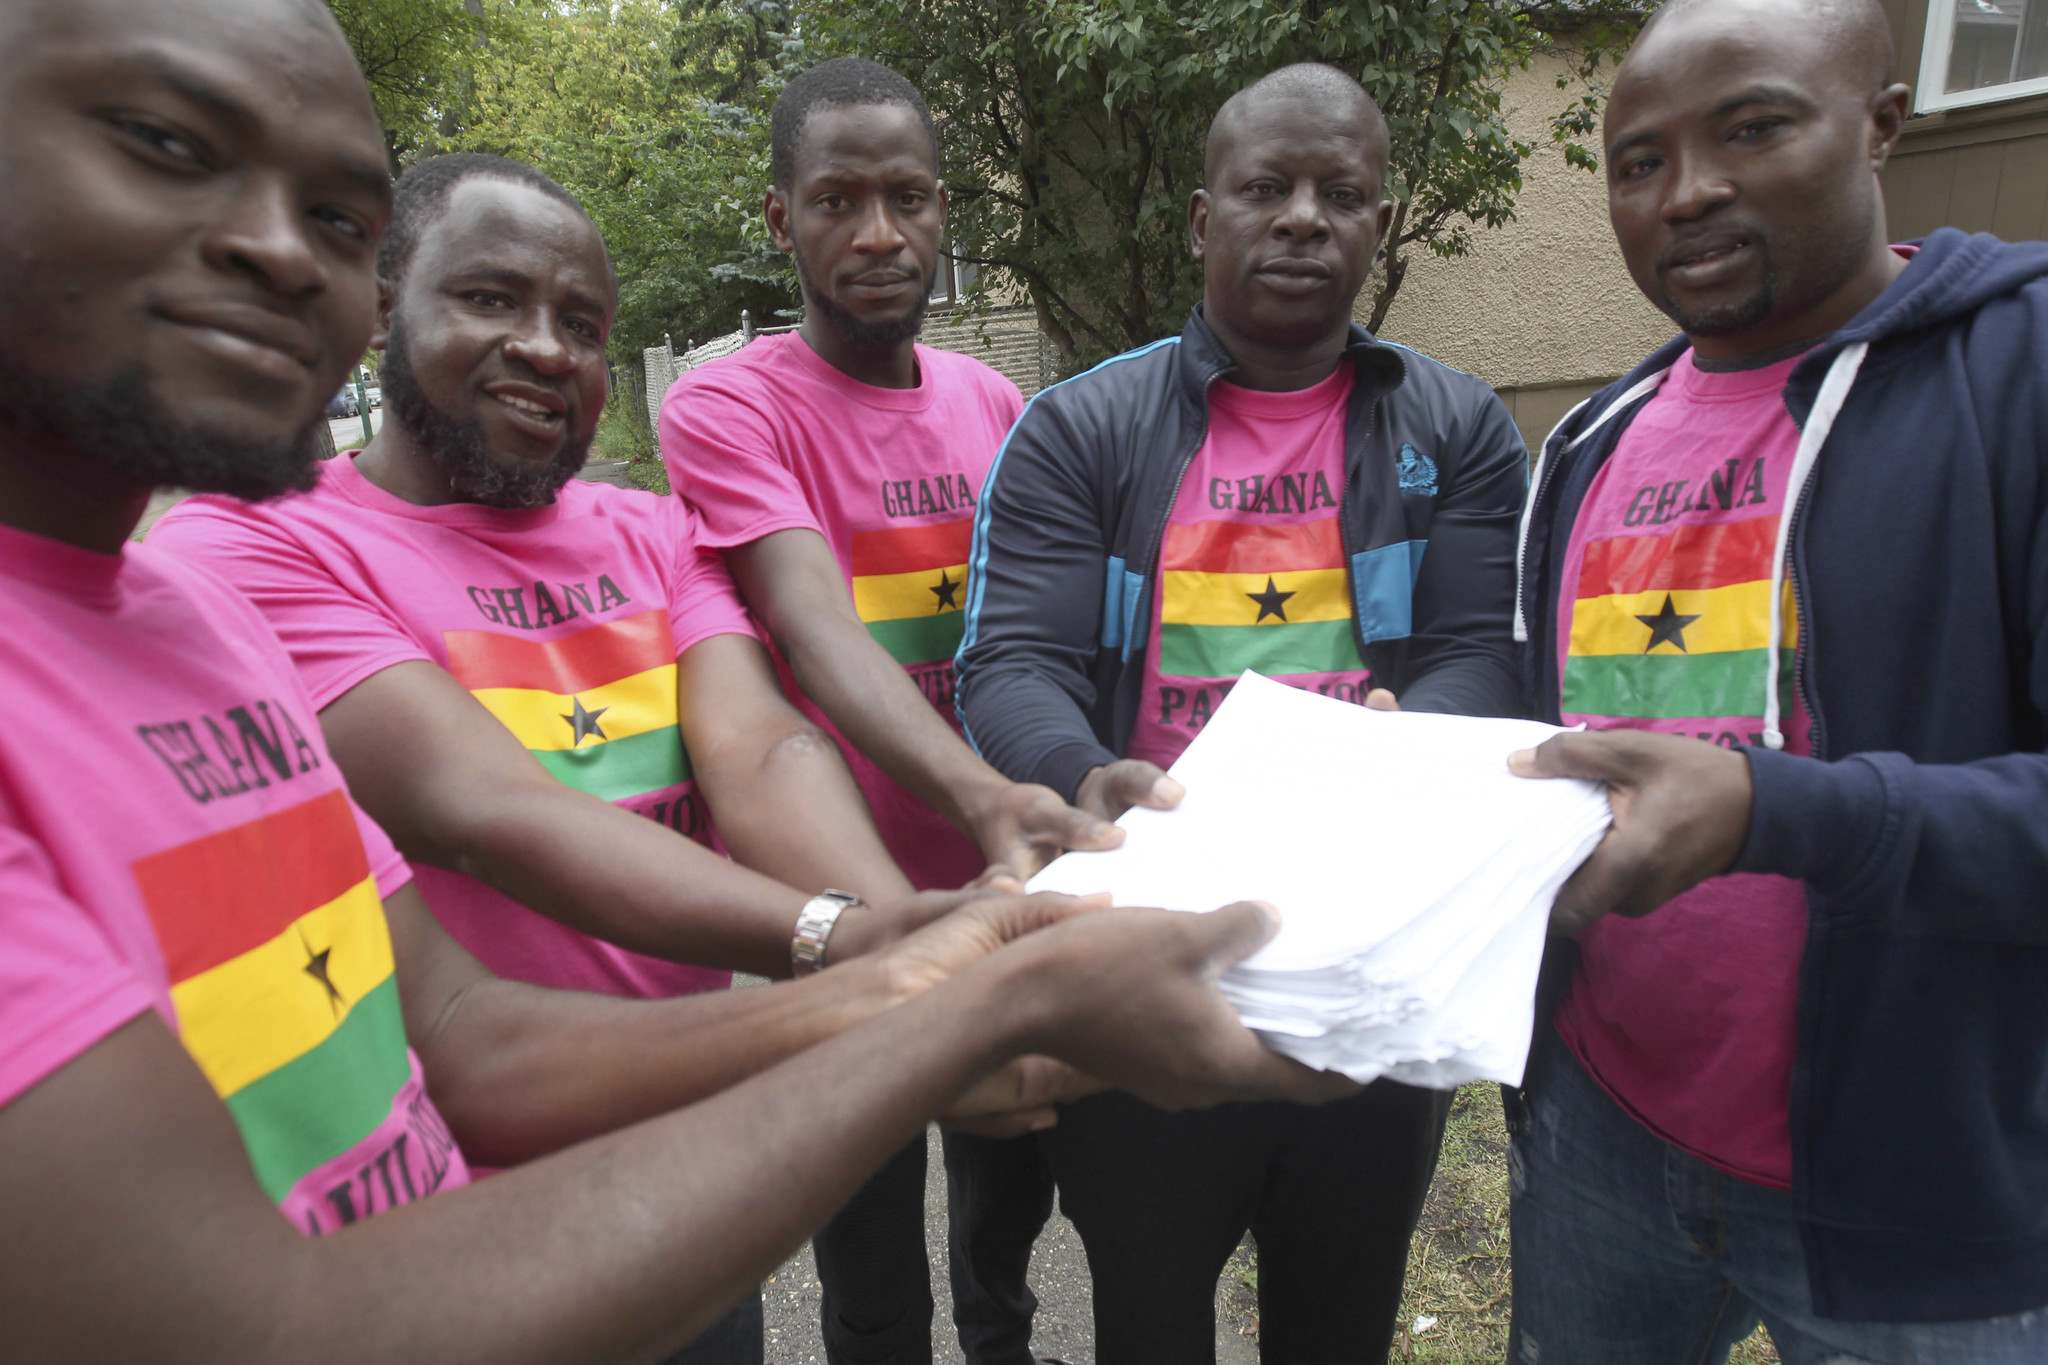 JOE BRYKSA / WINNIPEG FREE PRESS</p><p>From left, Fuseini Umar, Saalu Usman, Ziyawu Mohammed, Sulemana Abdulai, and Baba Issaka are LGBTQ* refugee claimants from Ghana with signatures they collected outside Folklorama pavilions calling for the decriminalization of homosexuality in Ghana.</p>